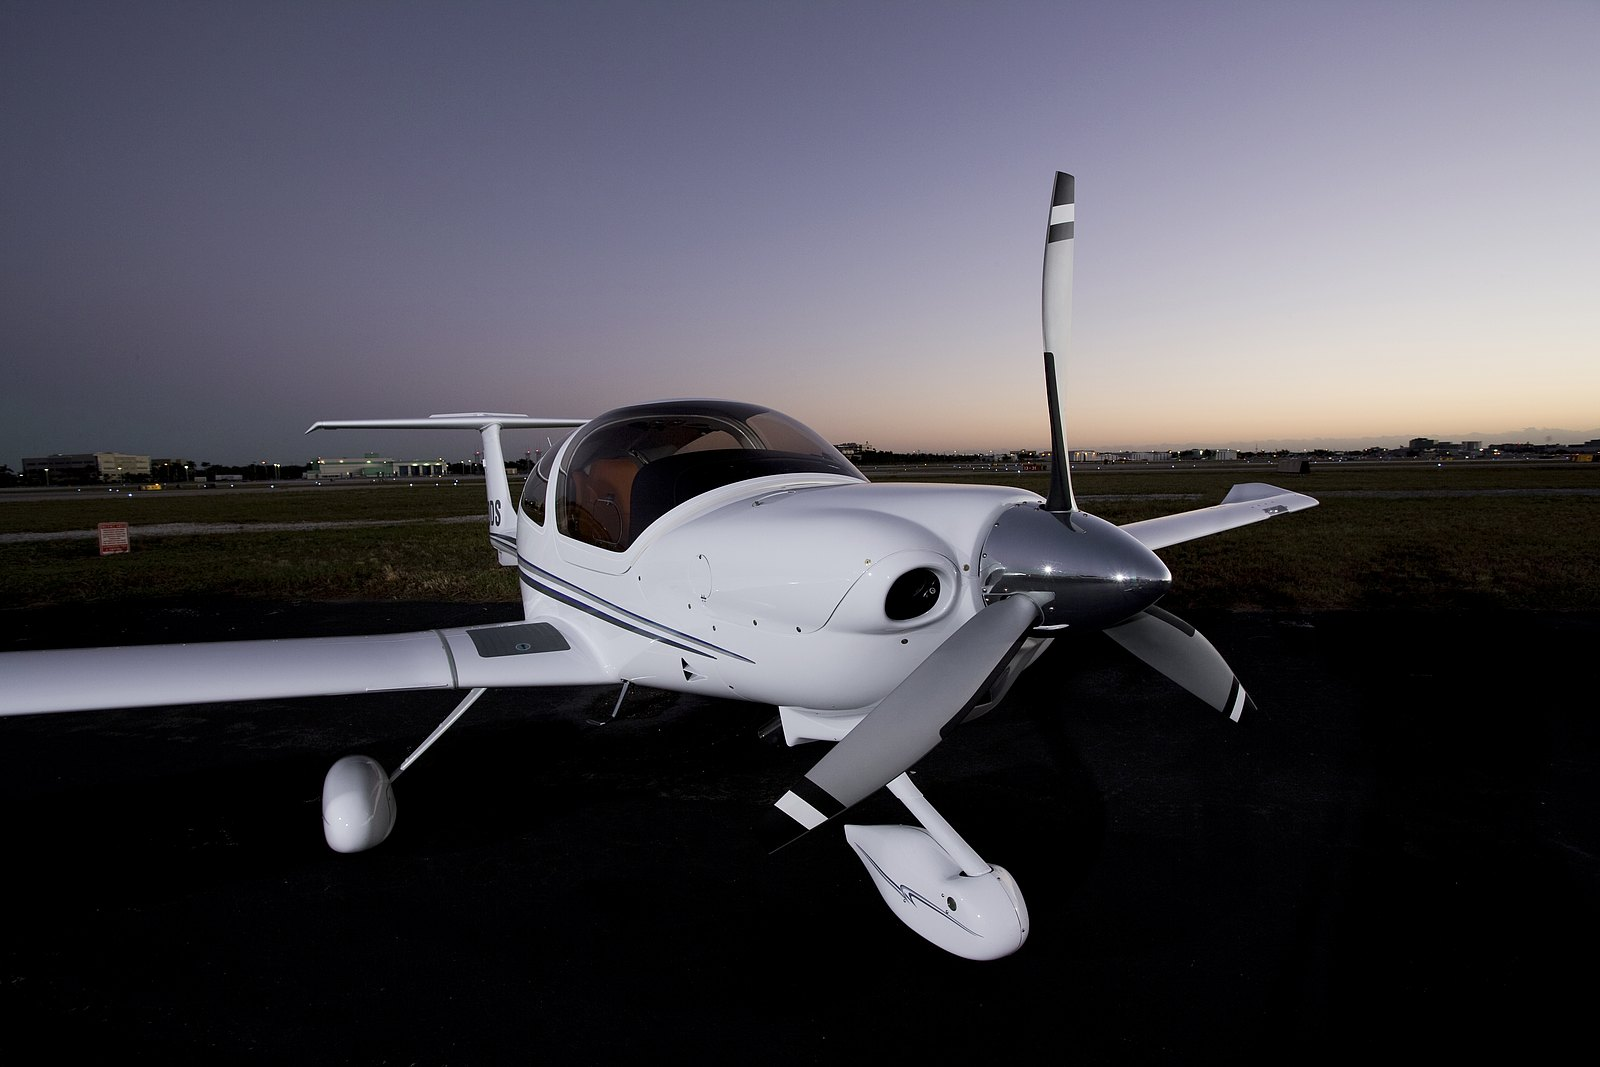 DA40 XLT All round practical and versatile multi-use four seat airplane